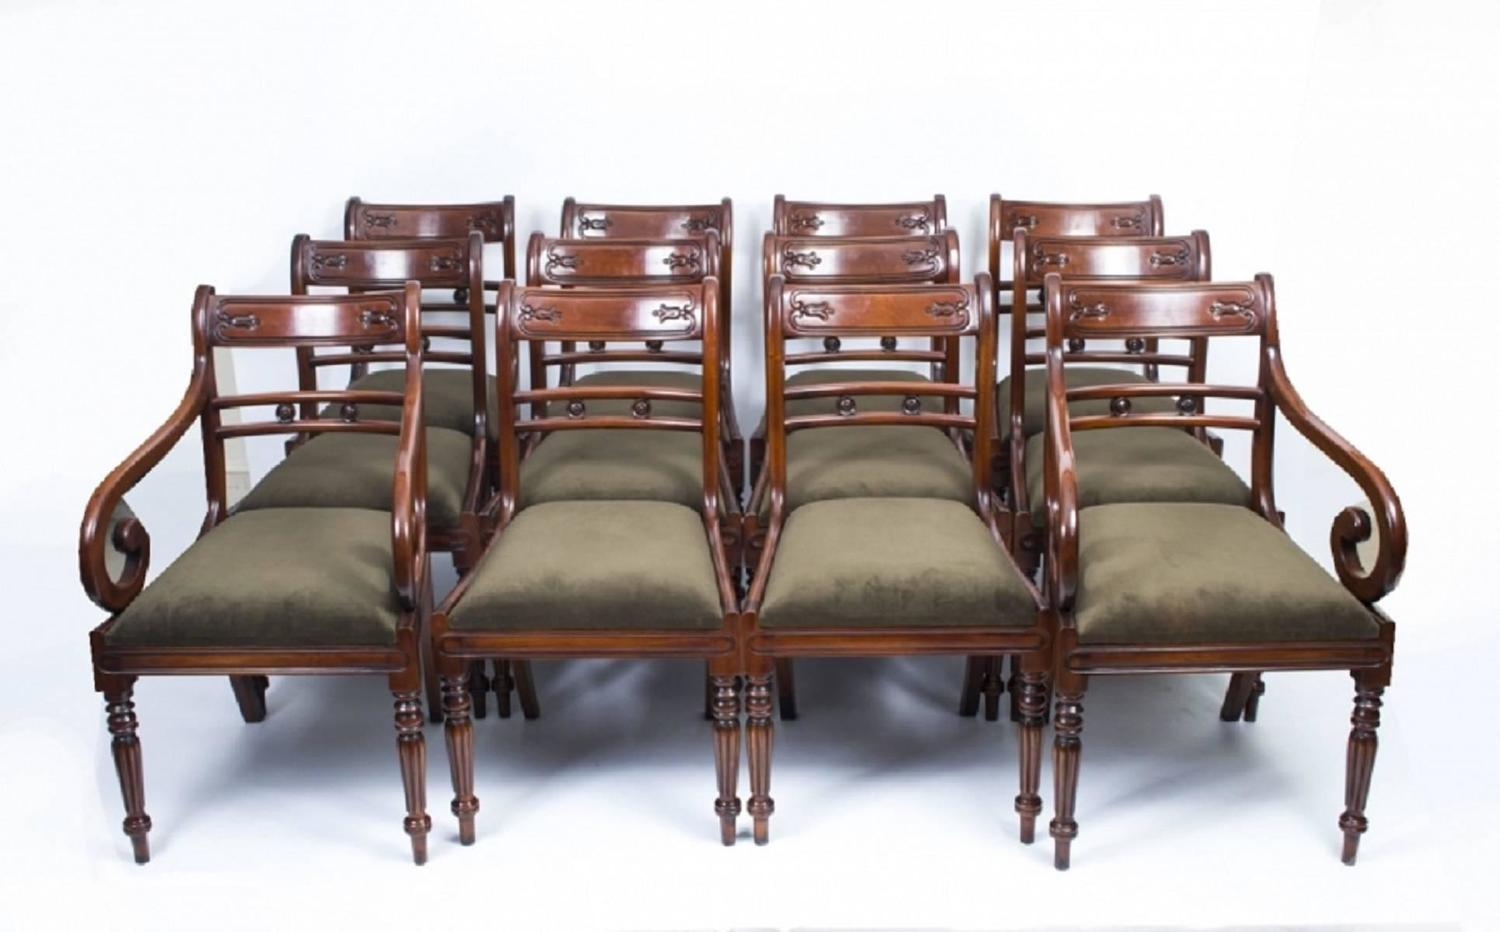 12 Chairs Antique William Iv Mahogany Extending Dining Table And 12